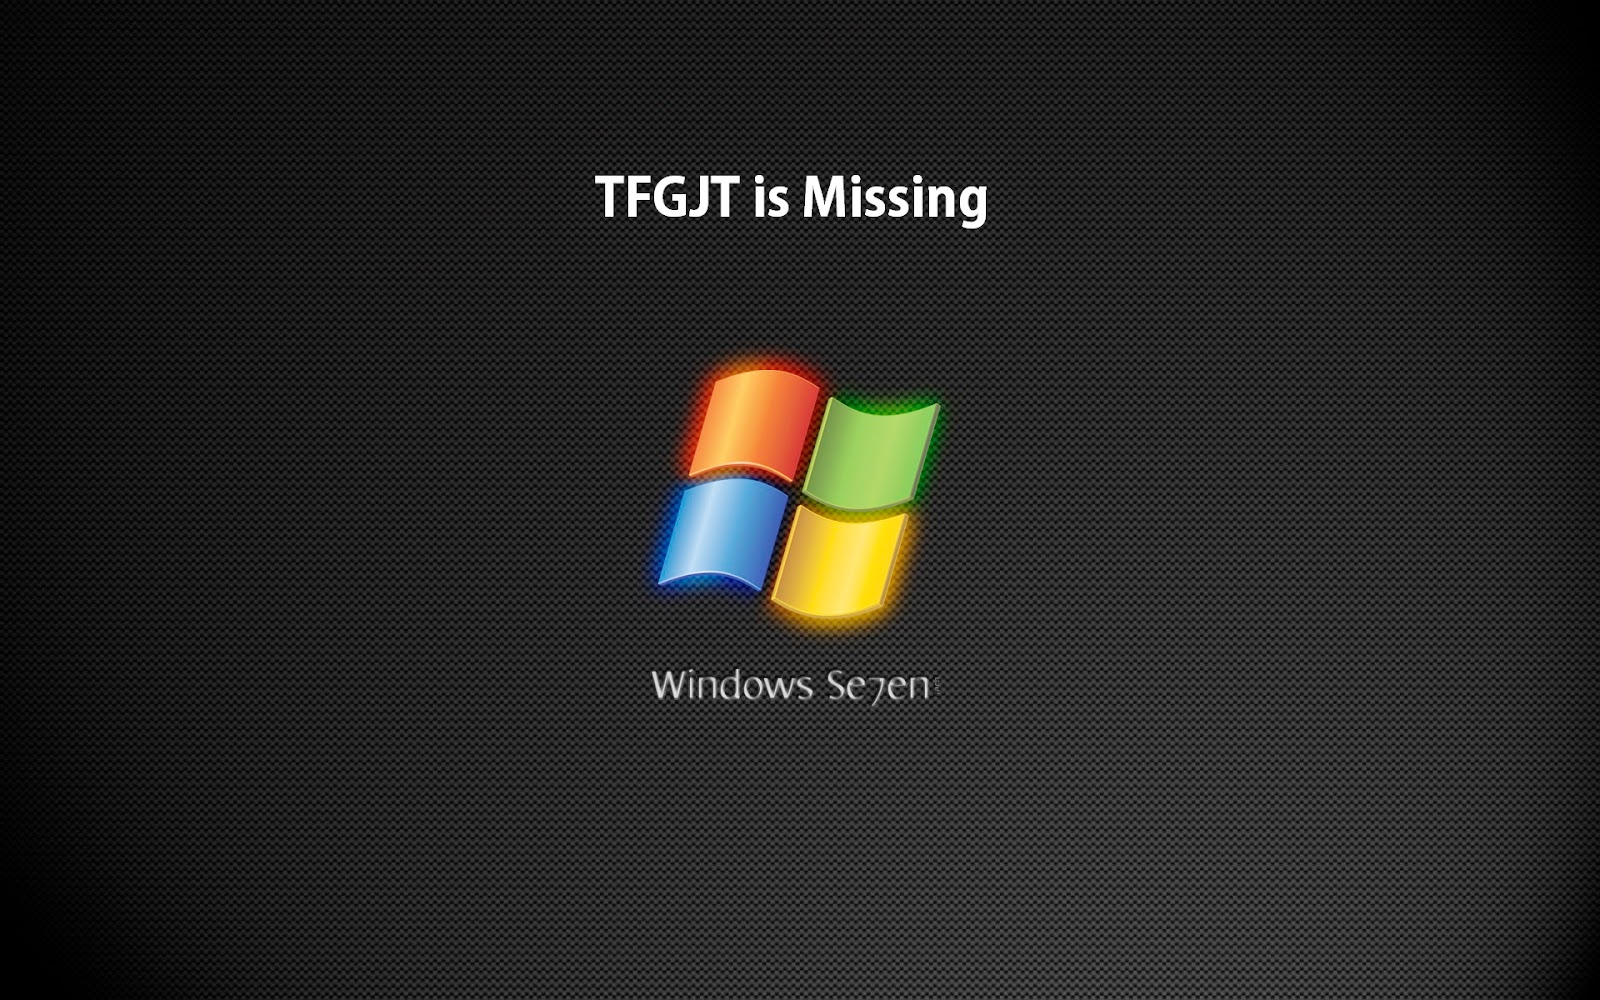 "How to Fix Window 7 Error ""TFGHT is missing"" window 7, bestbuy.com‎, Windows 7 - Microsoft,  ‎Invalid product key, Upgrading from Windows XP, Upgrade to Windows 8.1, What happens to Windows 7 on October 31, 2014, Amazon.com: Windows 7 Home Premium SP1 64bit, Windows 7 USB/DVD Download Tool, Microsoft Store, Microsoft withdraws another buggy update, Windows 7 review, Operating systems Reviews, TechRadar, Images for windows 7, More images for windows 7, Windows 7 News & Features, PCMag.com, First look at Windows 7's User Interface, 94 Windows 7 tips, tricks and secrets, windows 7 free download full version, windows 7 download, windows 8, windows 7 upgrade, windows 7 gadgets, windows 7 system requirements, windows 7 versions, microsoft, computer, screen, lcd."